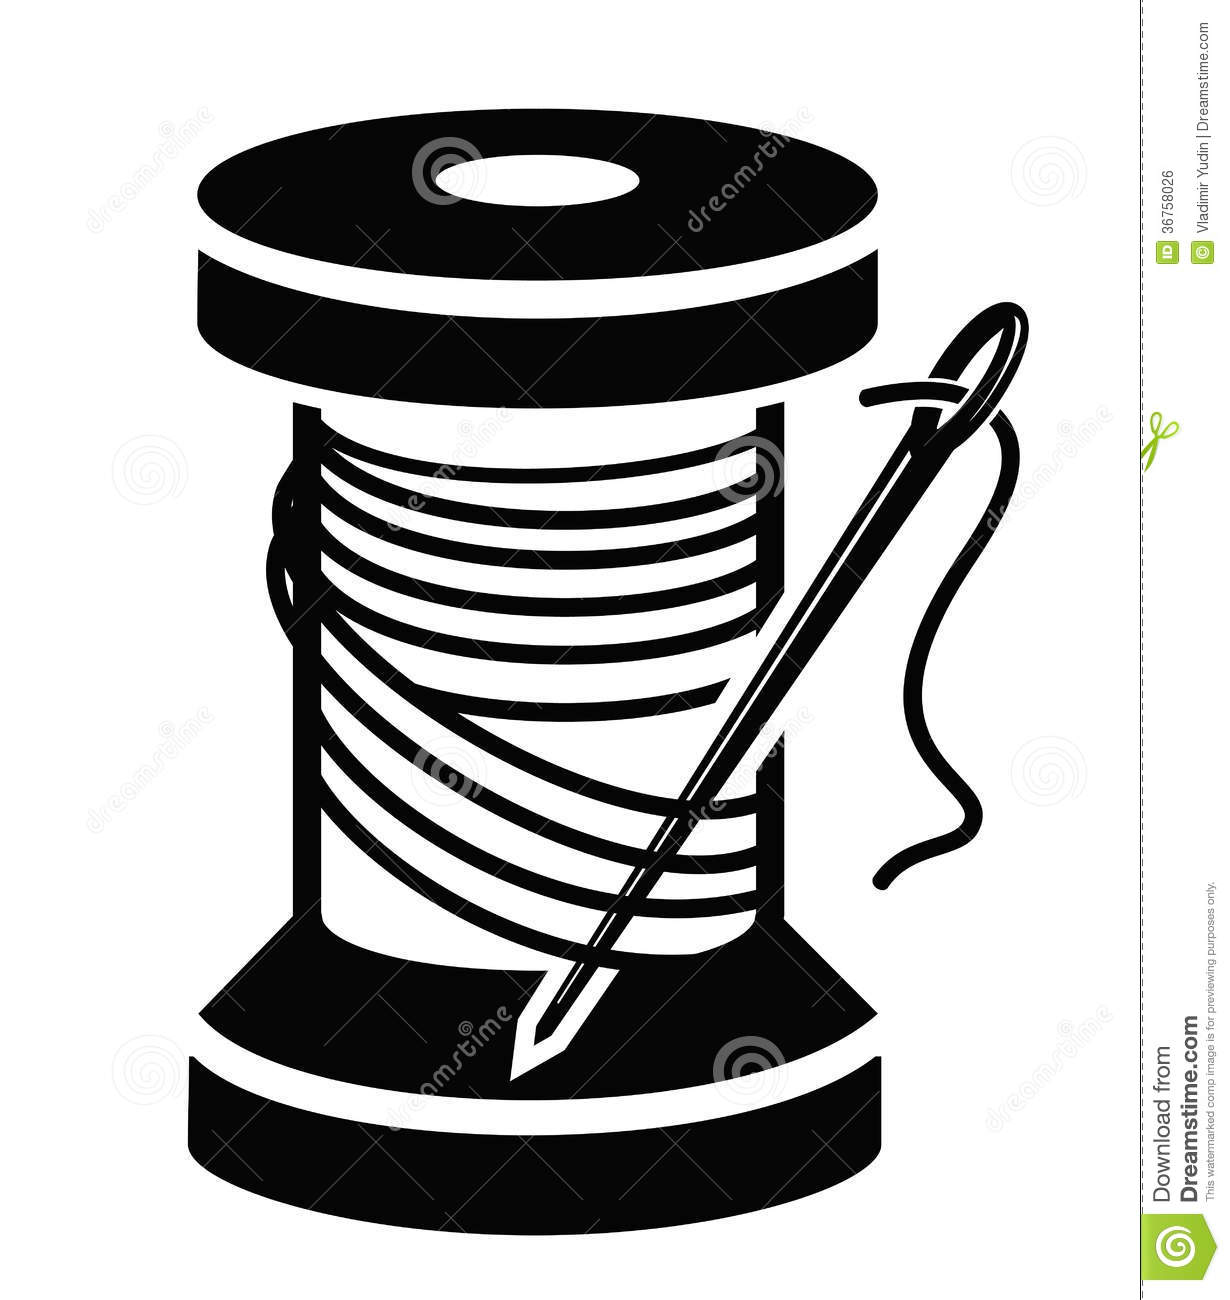 Spool of thread stock vector. Illustration of draw, rope - 36758026